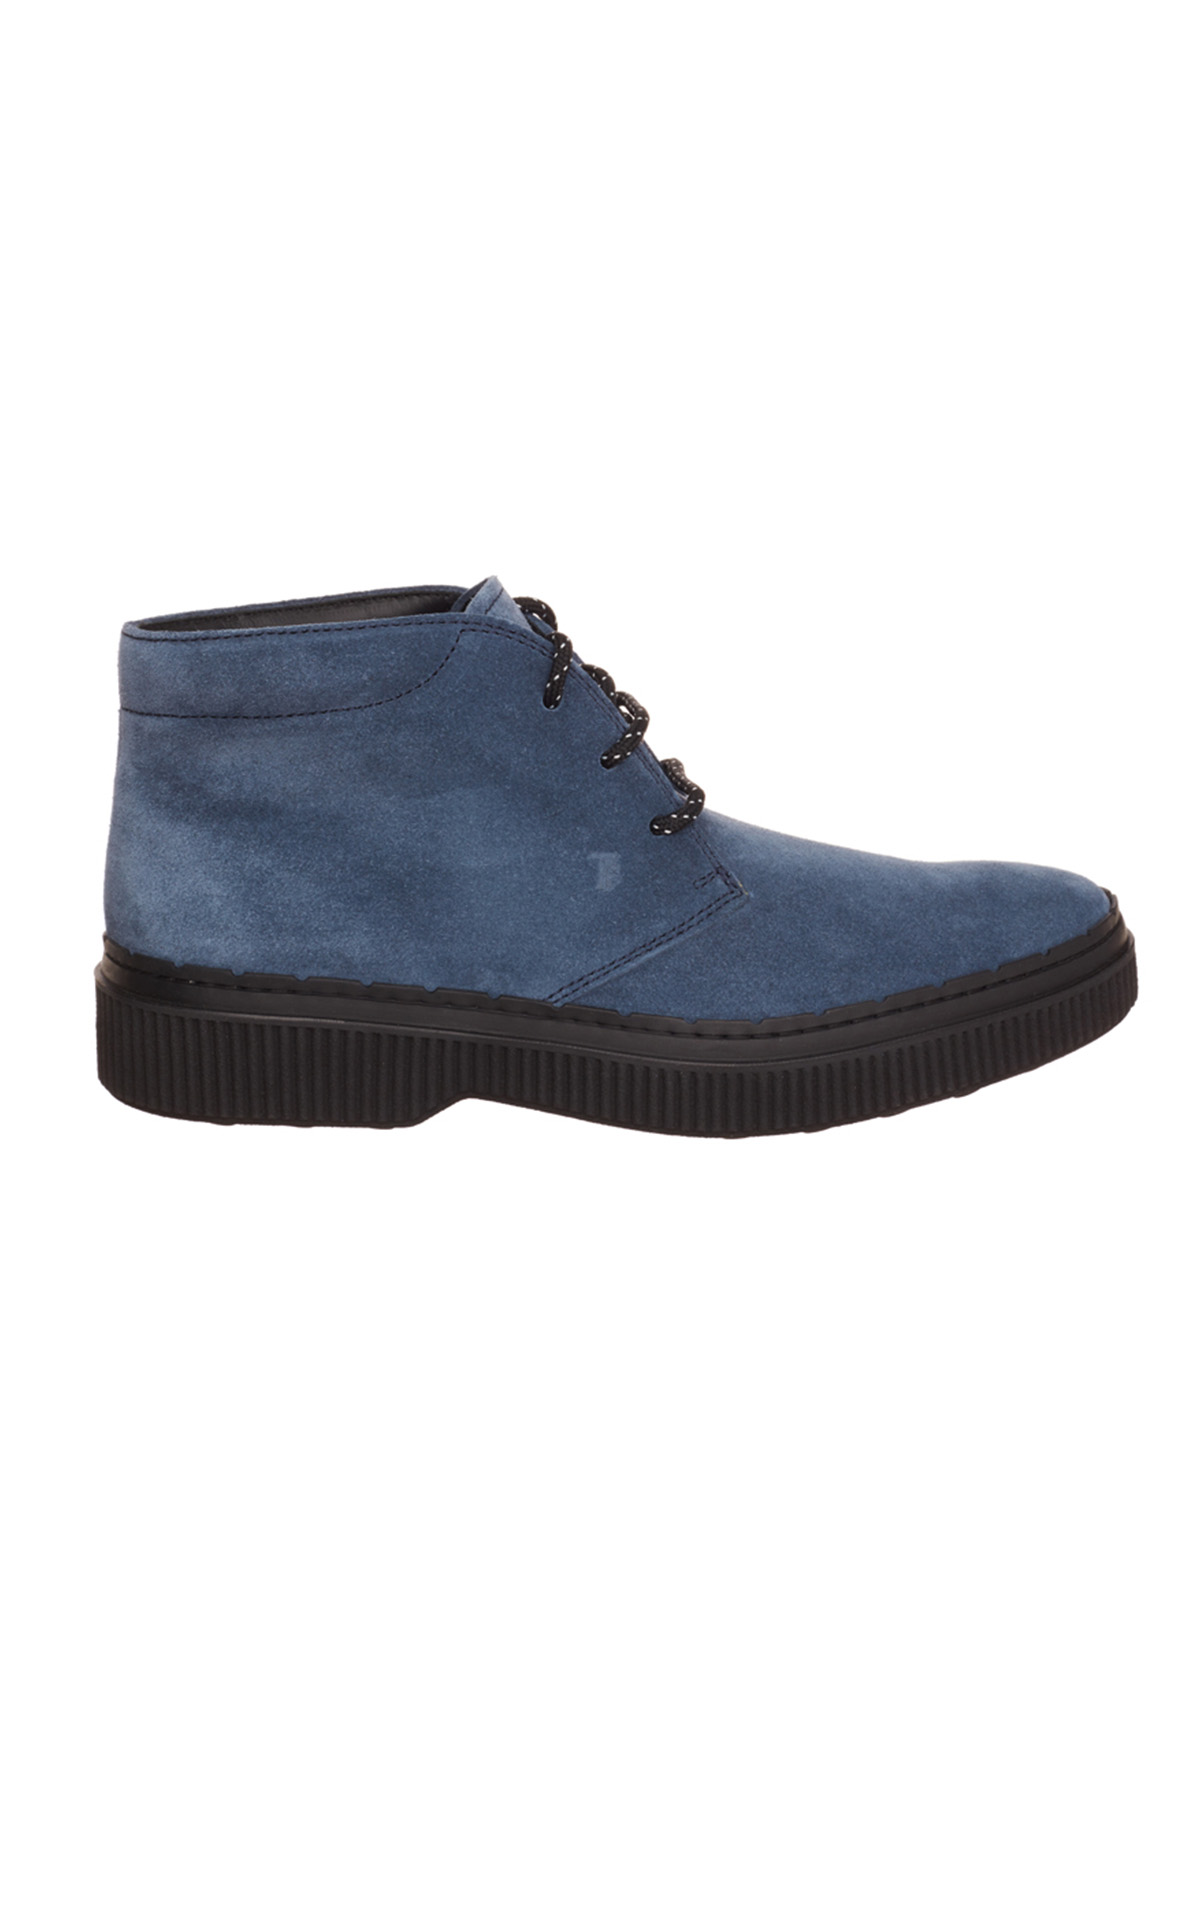 Tod's men's suede boots from Bicester Village